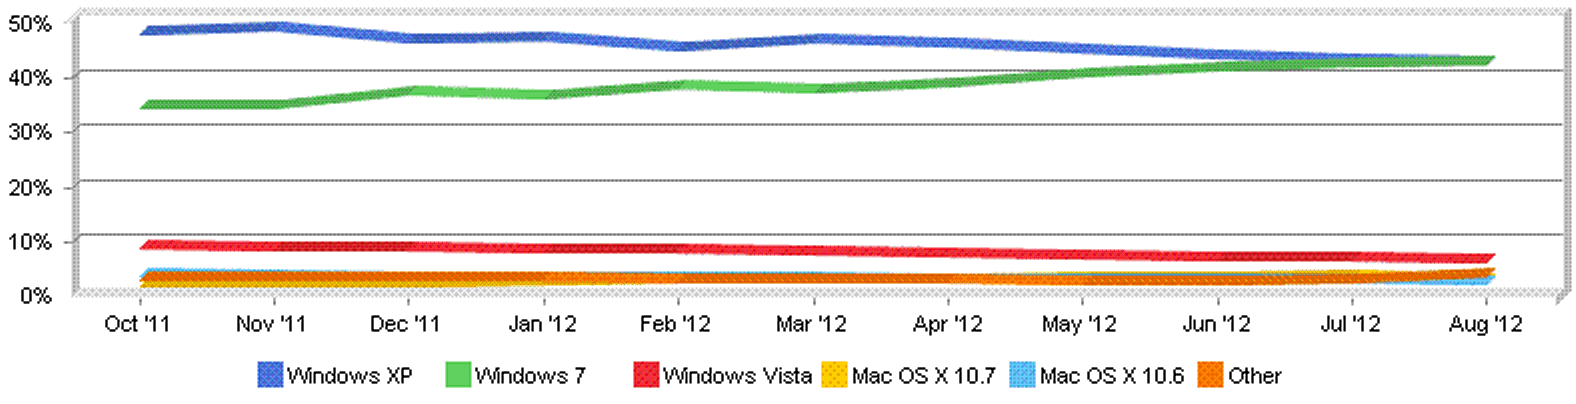 Windows 7 edged out Windows XP in August as the most-used operating system on the Internet, Net Applications statistics show